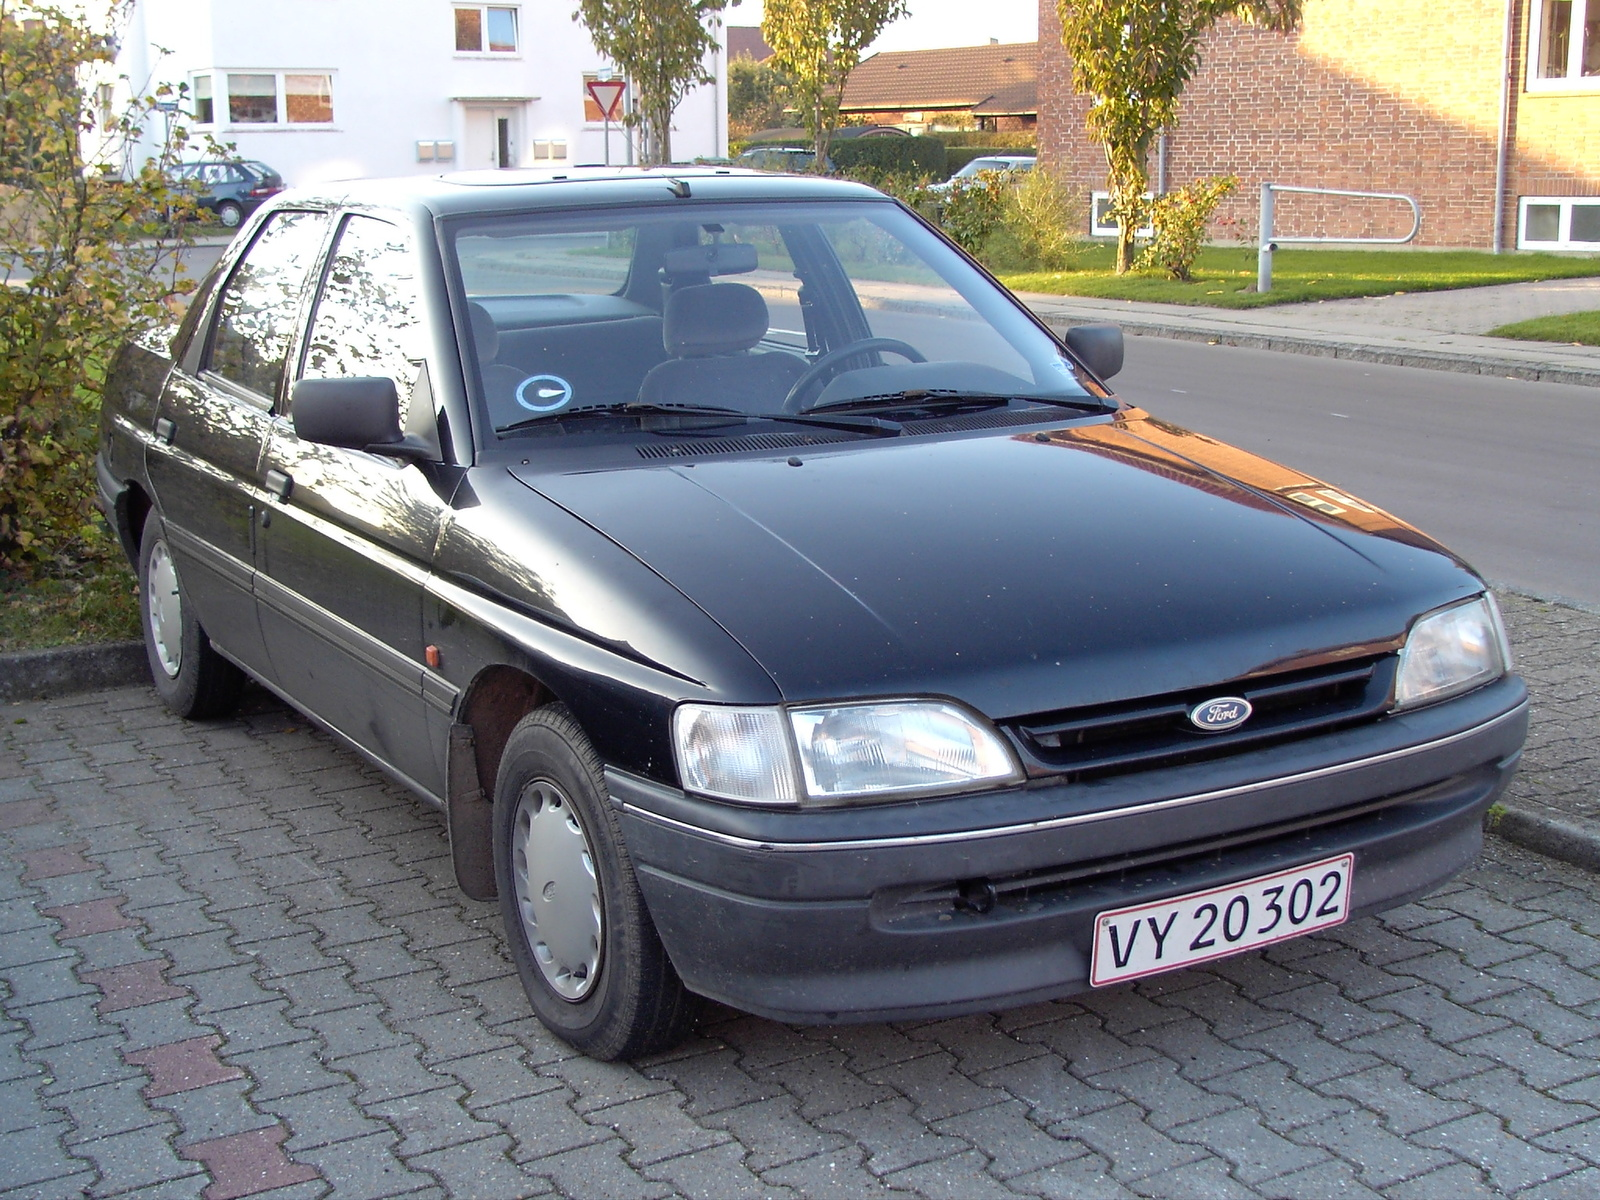 Ford Orion 1990 photo - 9